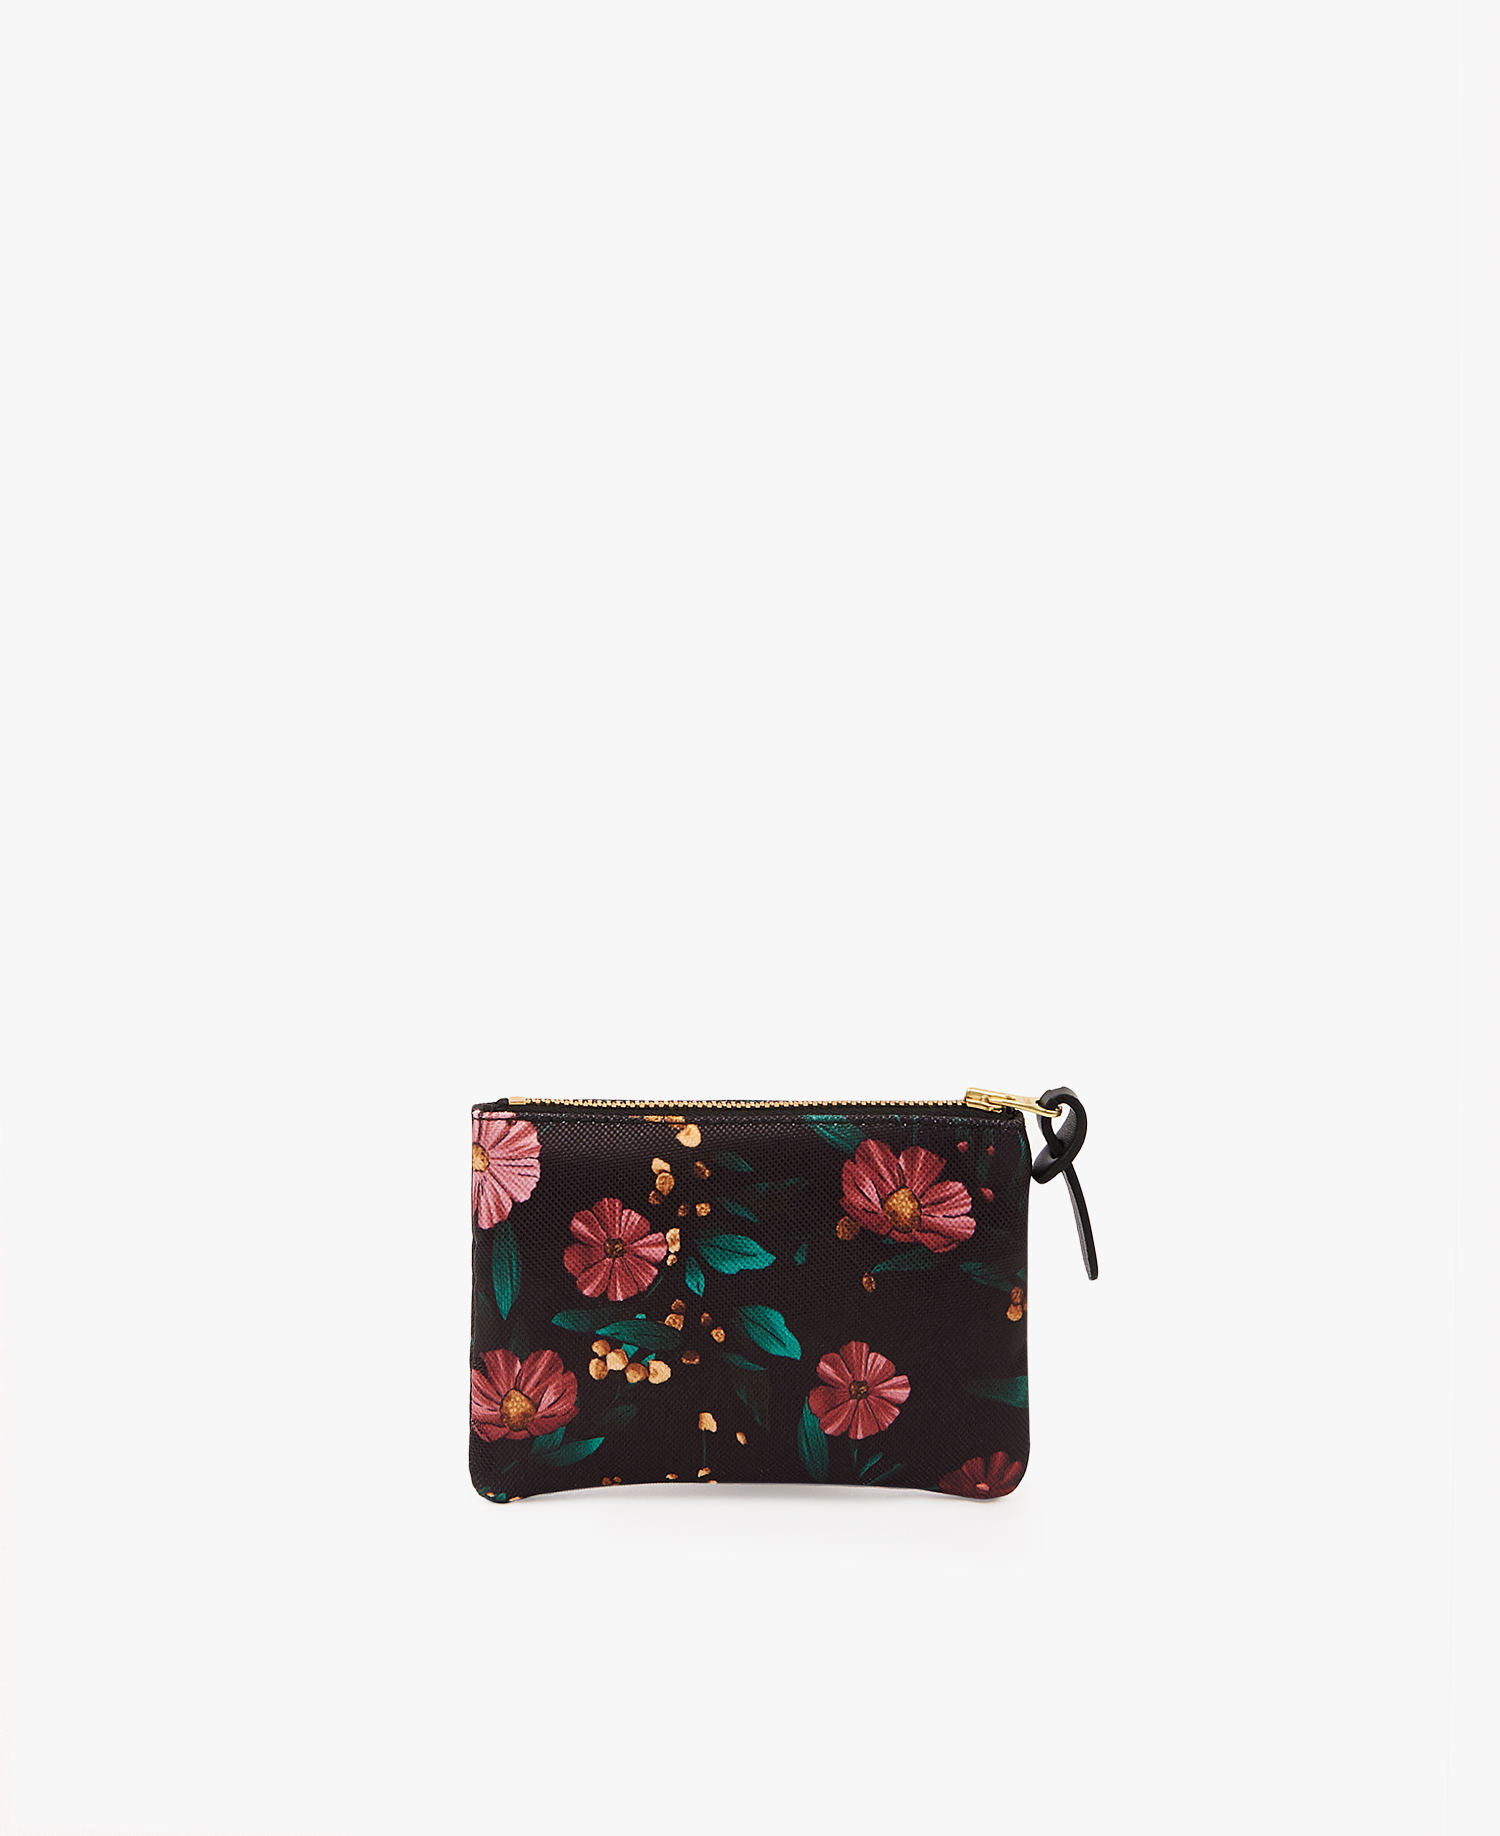 Black-Flowers-Small-Pouch-Bag-Display